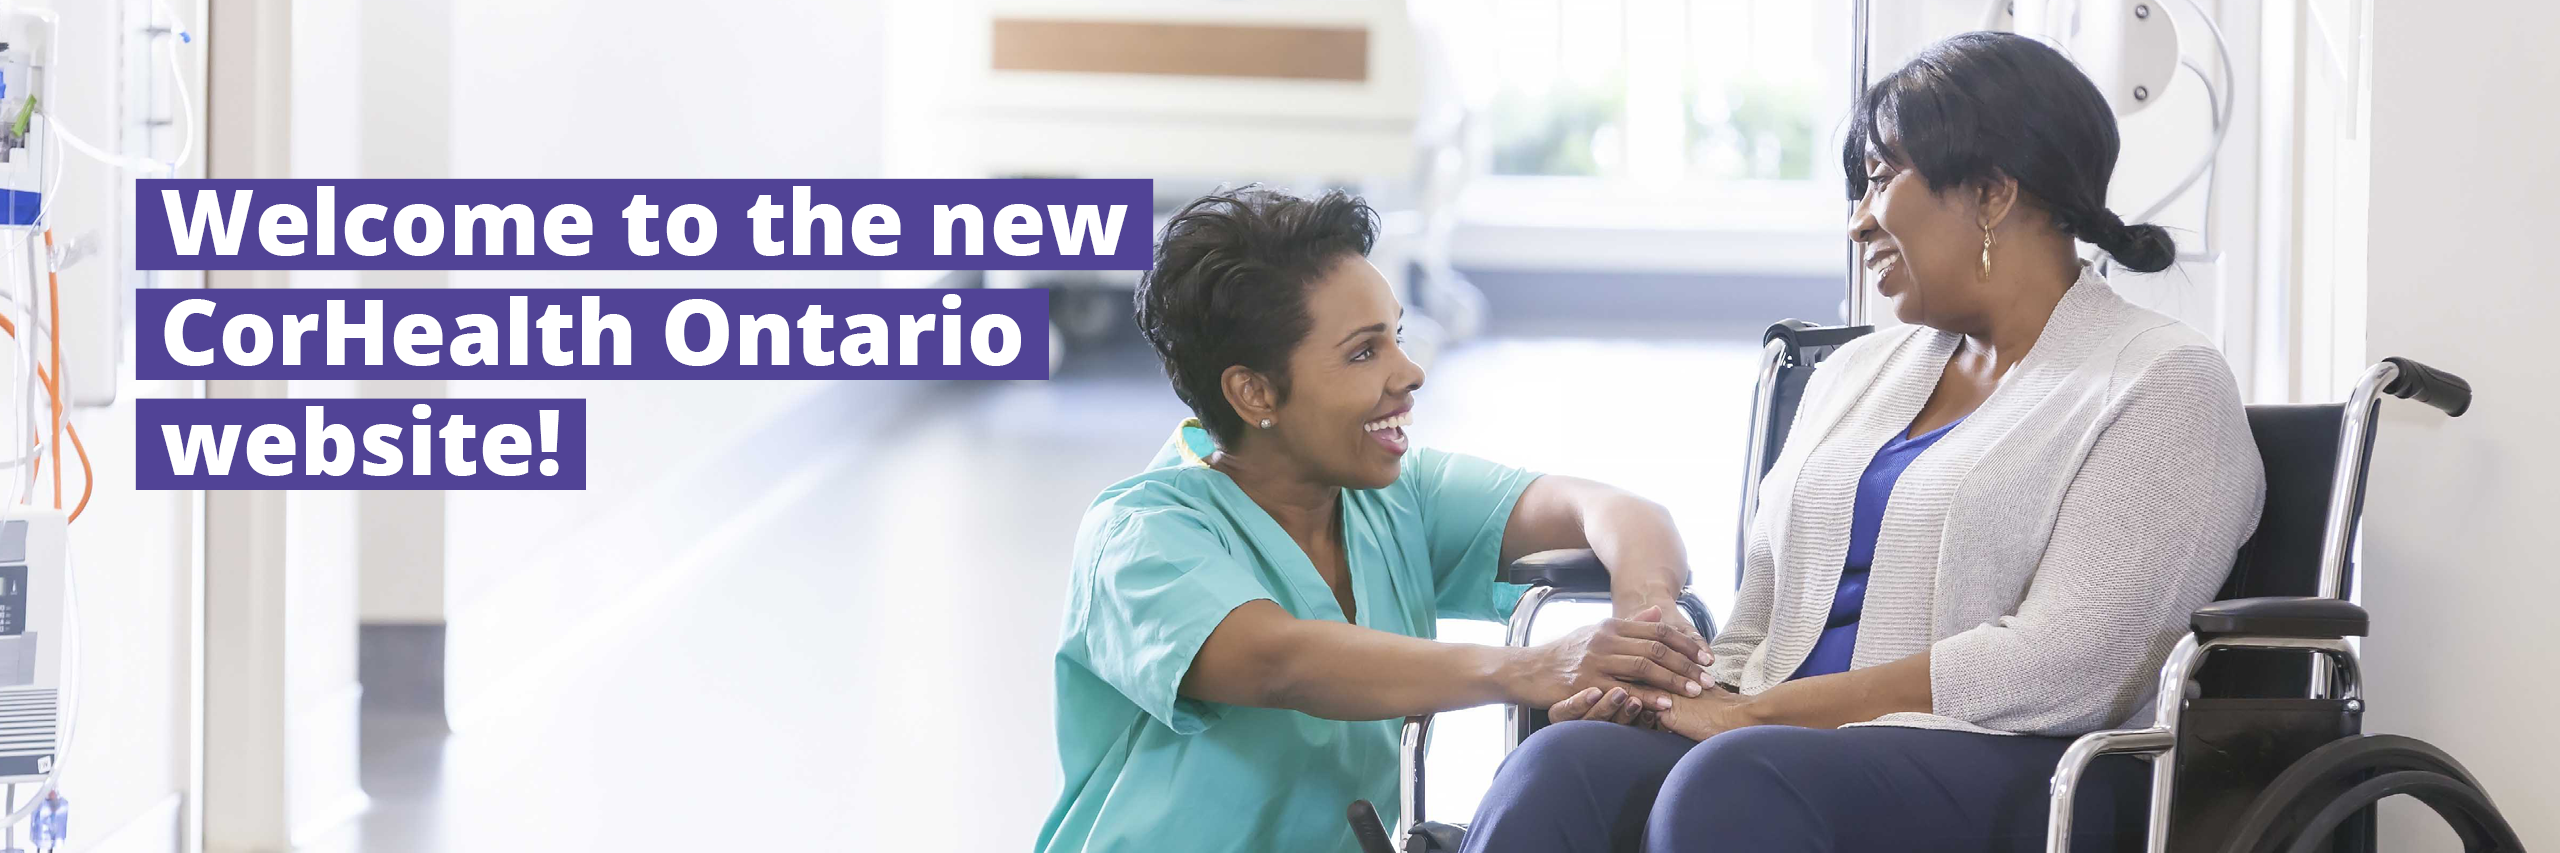 Welcome to the new CorHealth Ontario Website! - Young female healthcare provider squatting down to chat with senior women in a wheel chair.